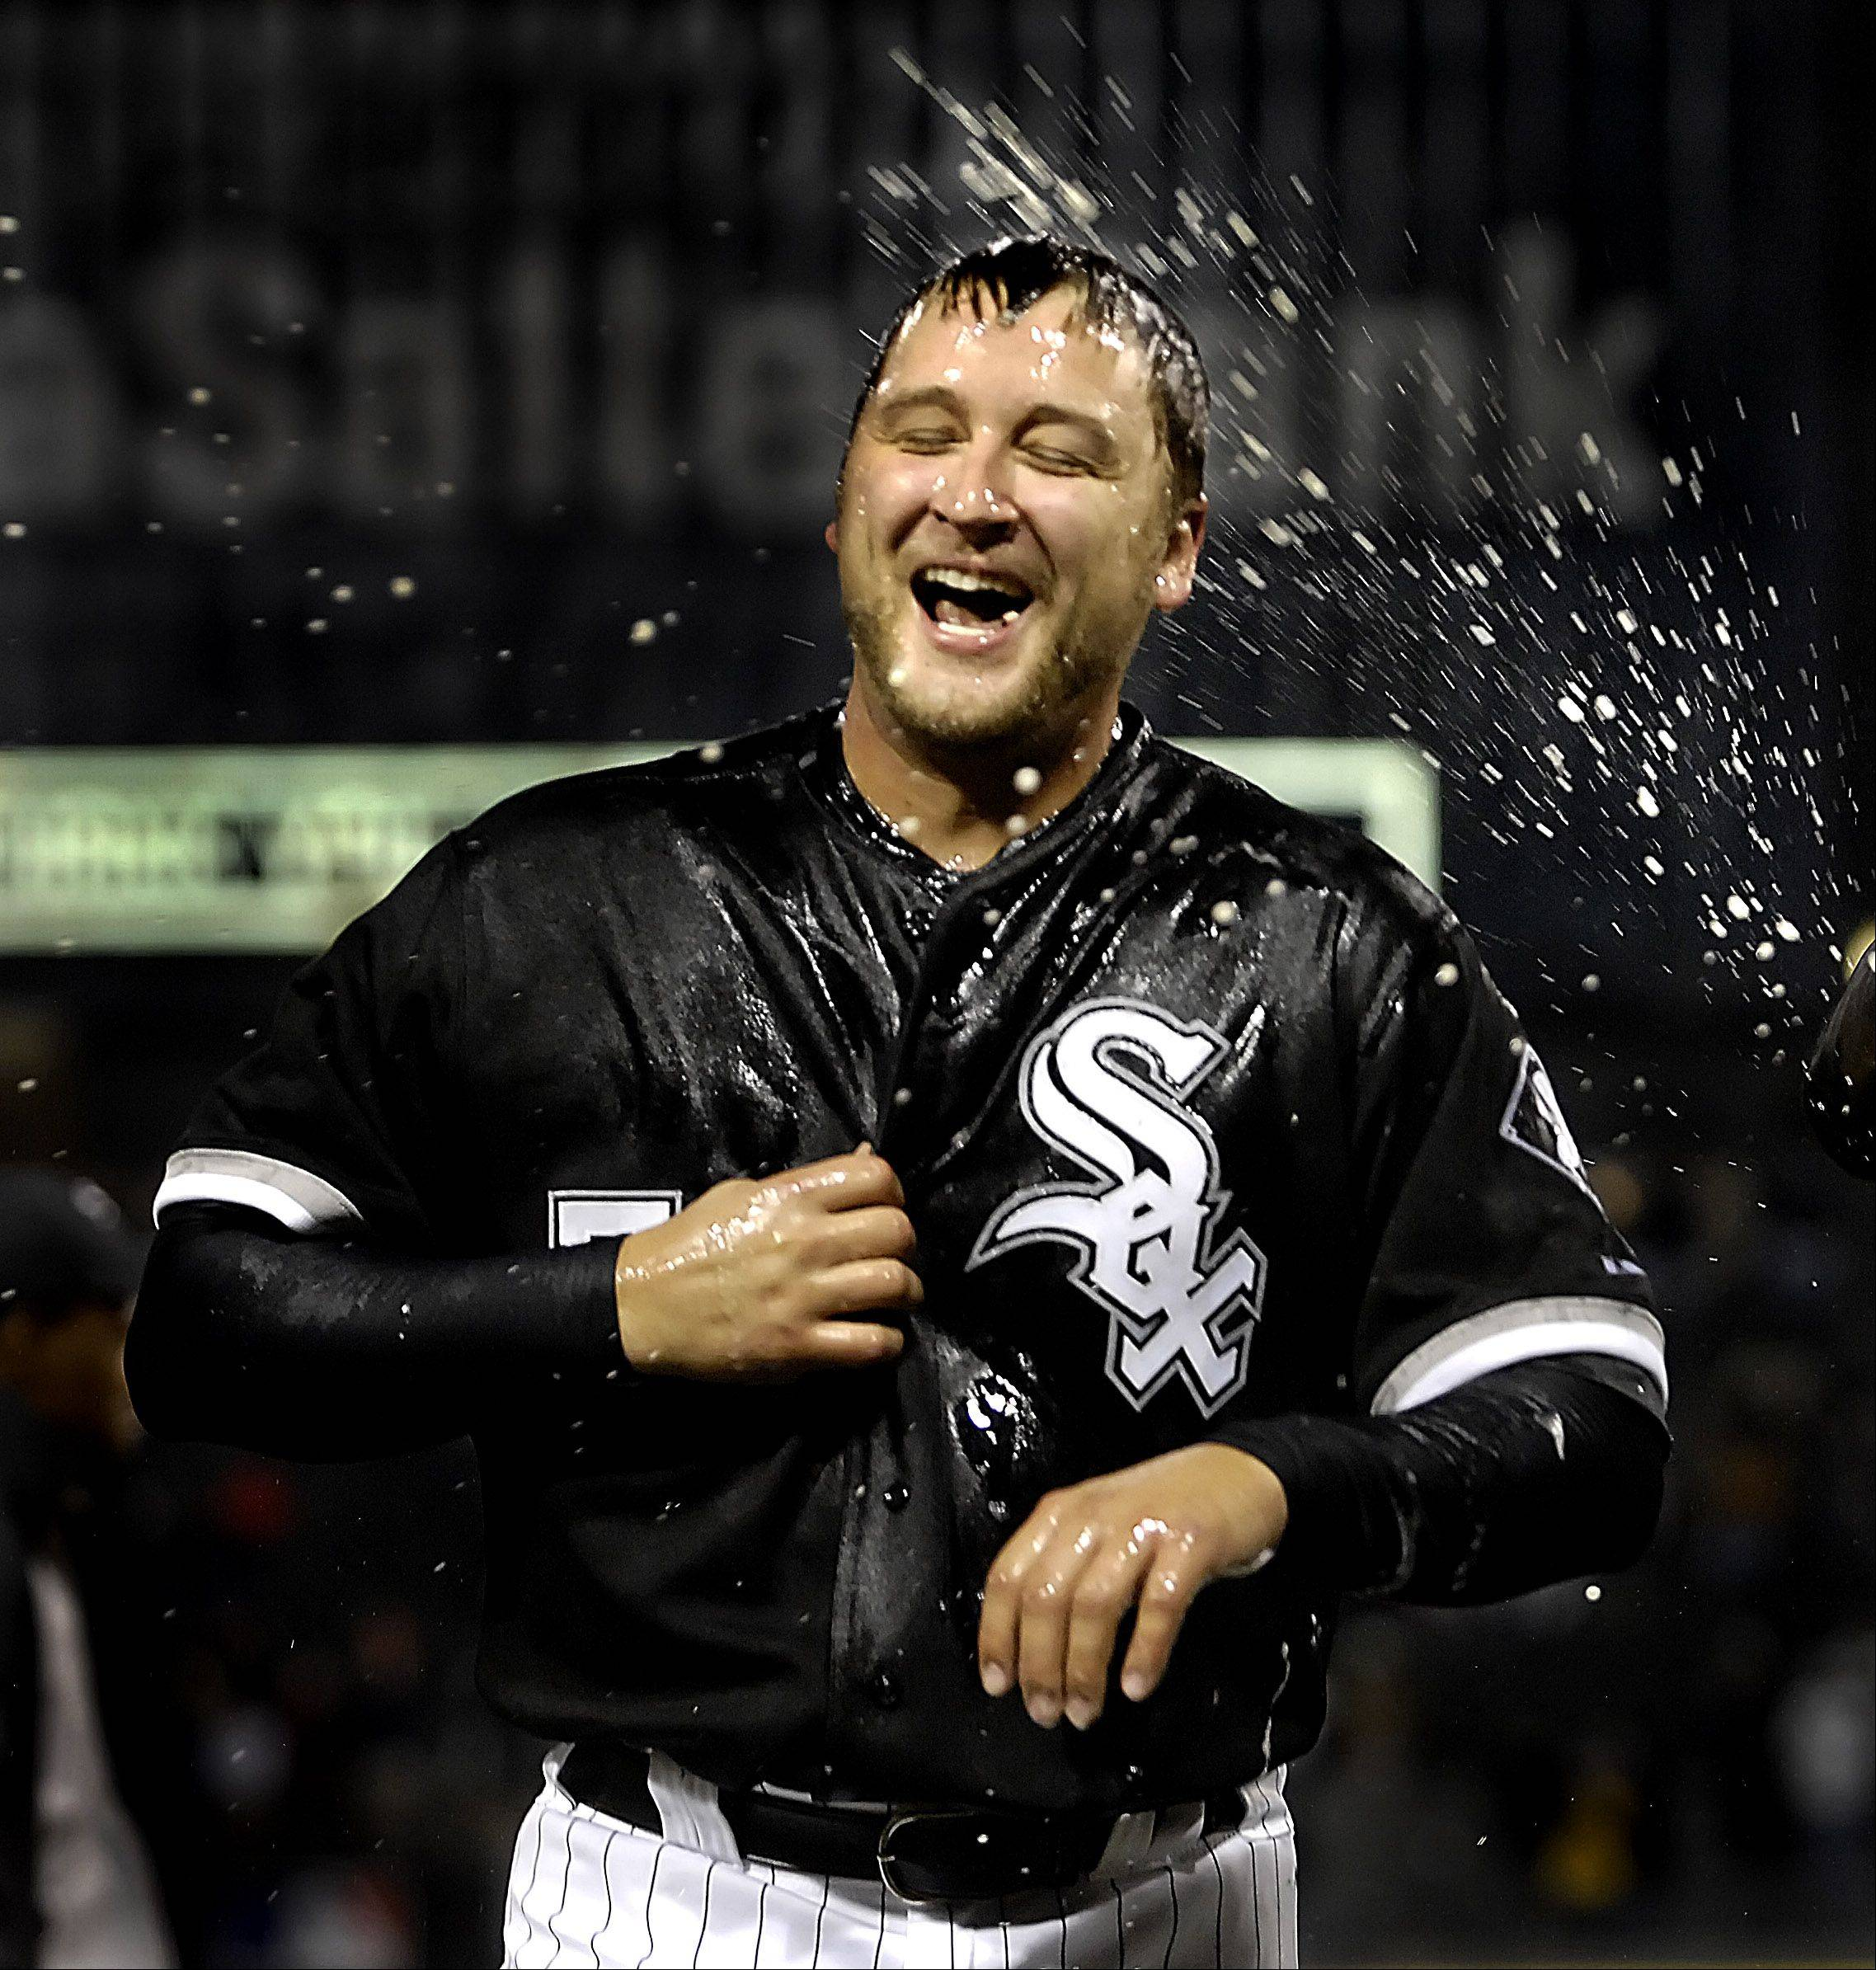 Chicago White Sox starting pitcher Mark Buehrle laughs as his teammate douse him with beer after he threw a one-walk, no-hitter against the Texas Rangers.